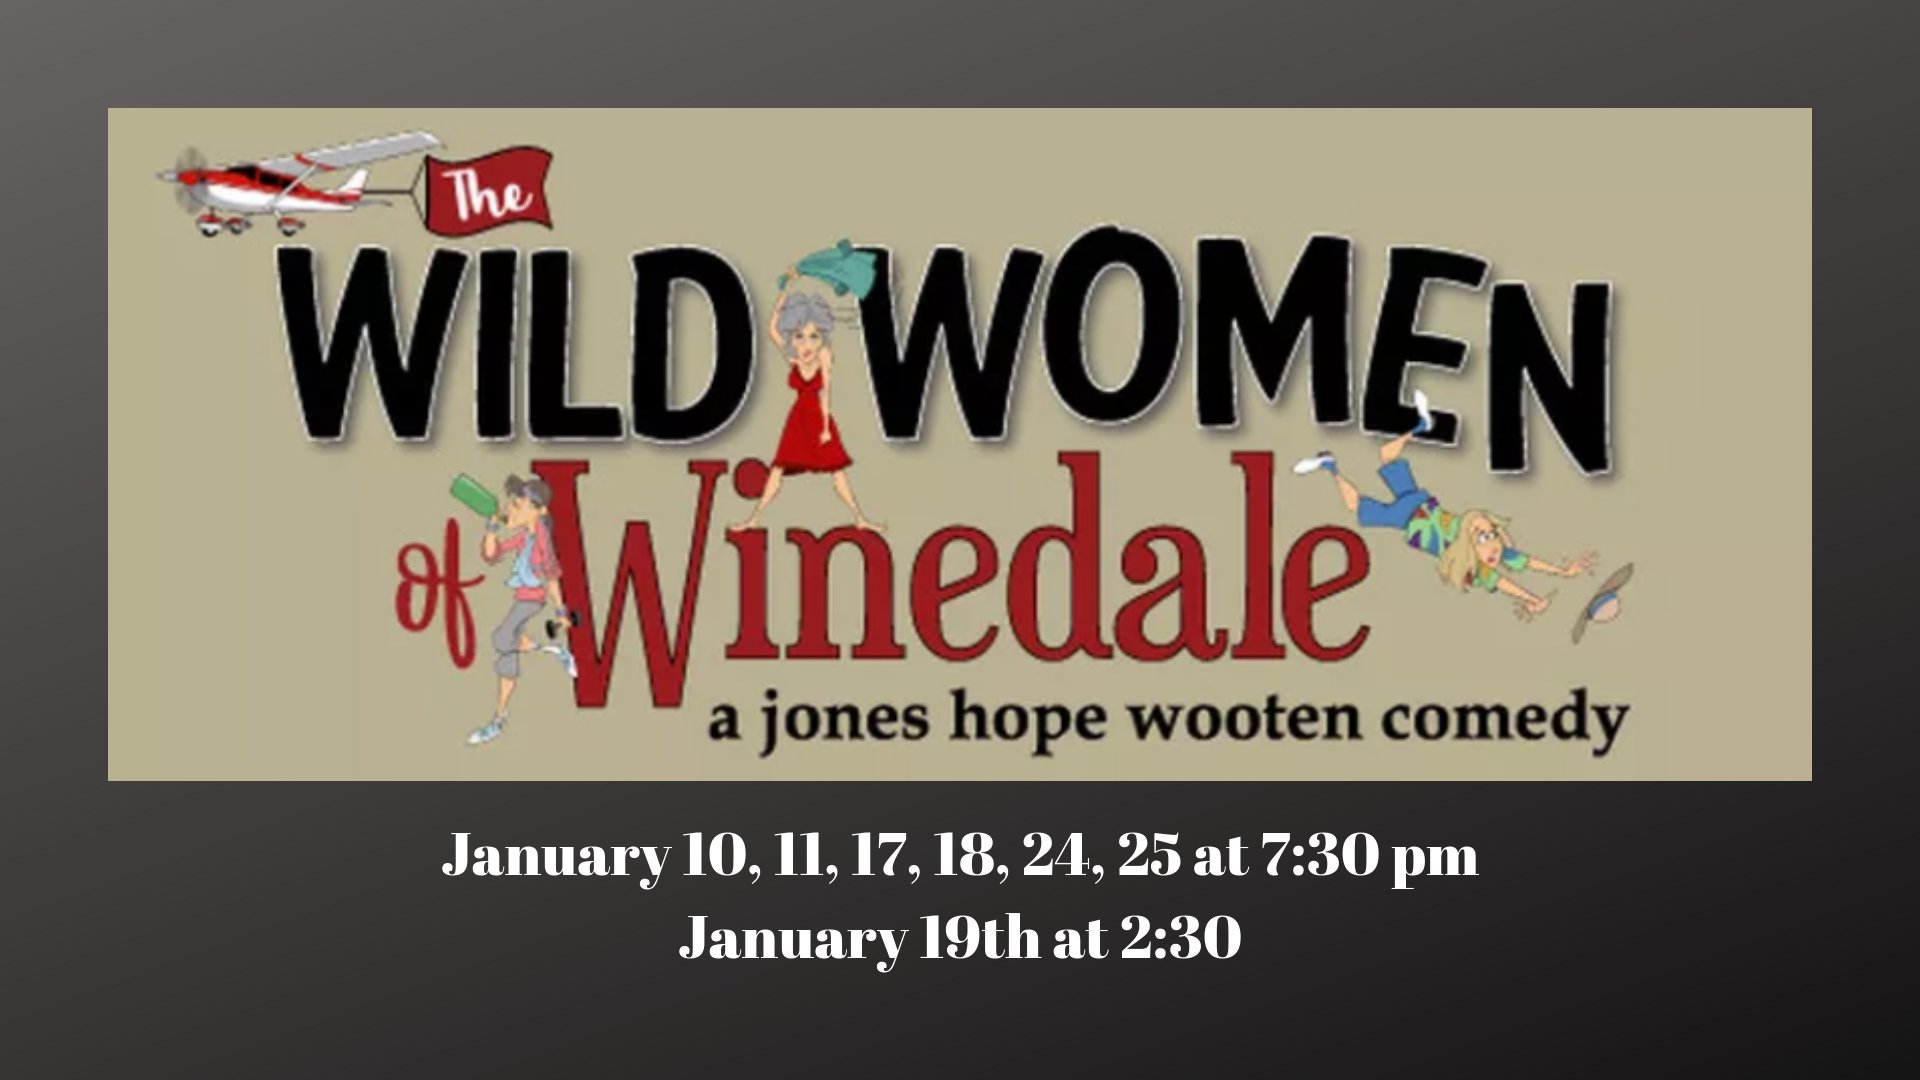 The Wild Women of Winedale by Bastrop Opera House